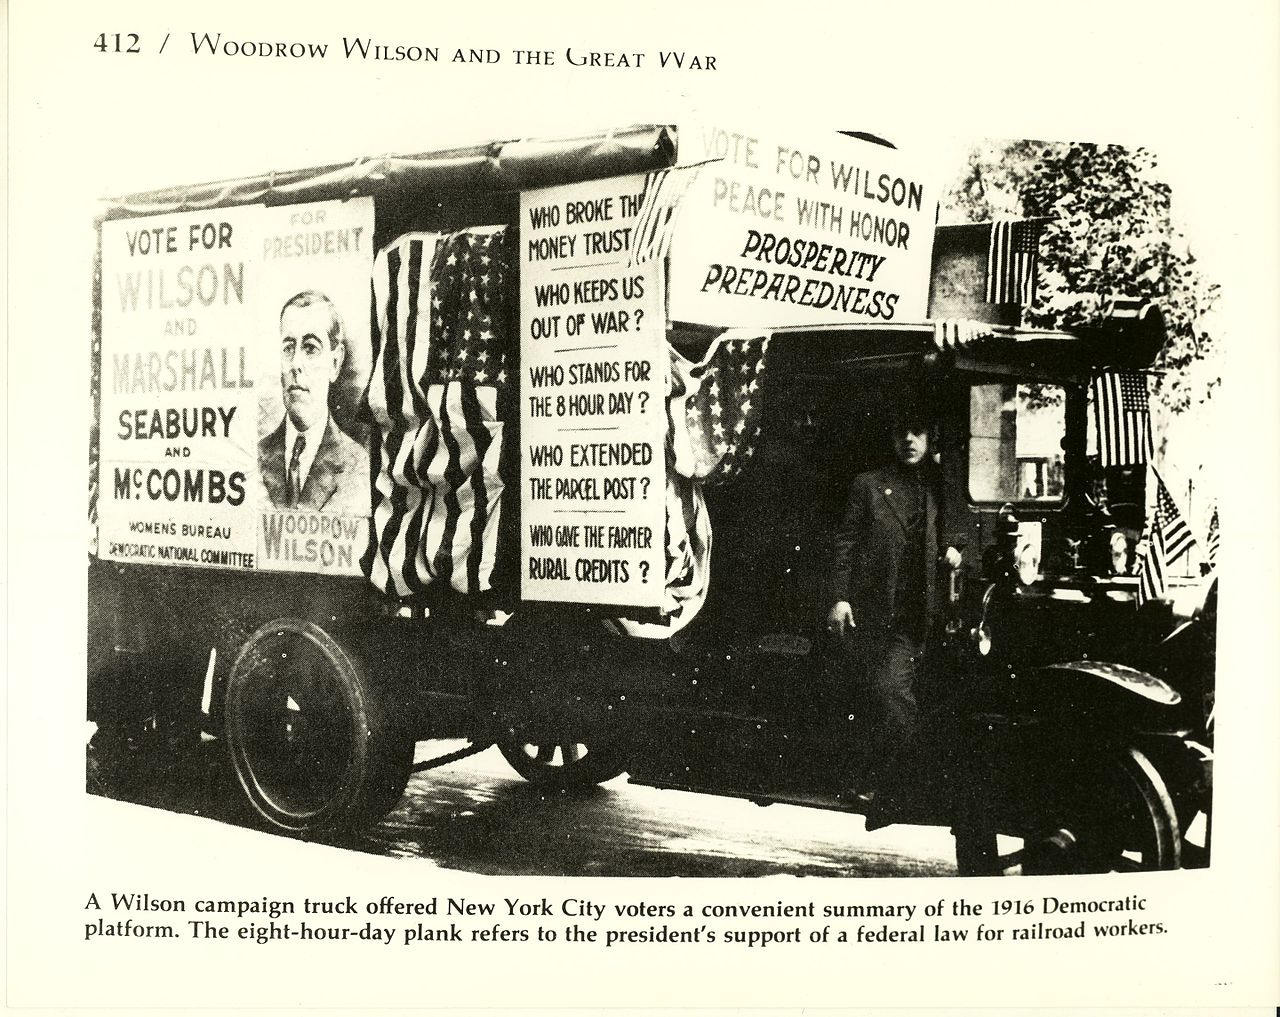 Early 20th Century truck with multiple placards attached. Placards urge voters to Vote for Wilson.